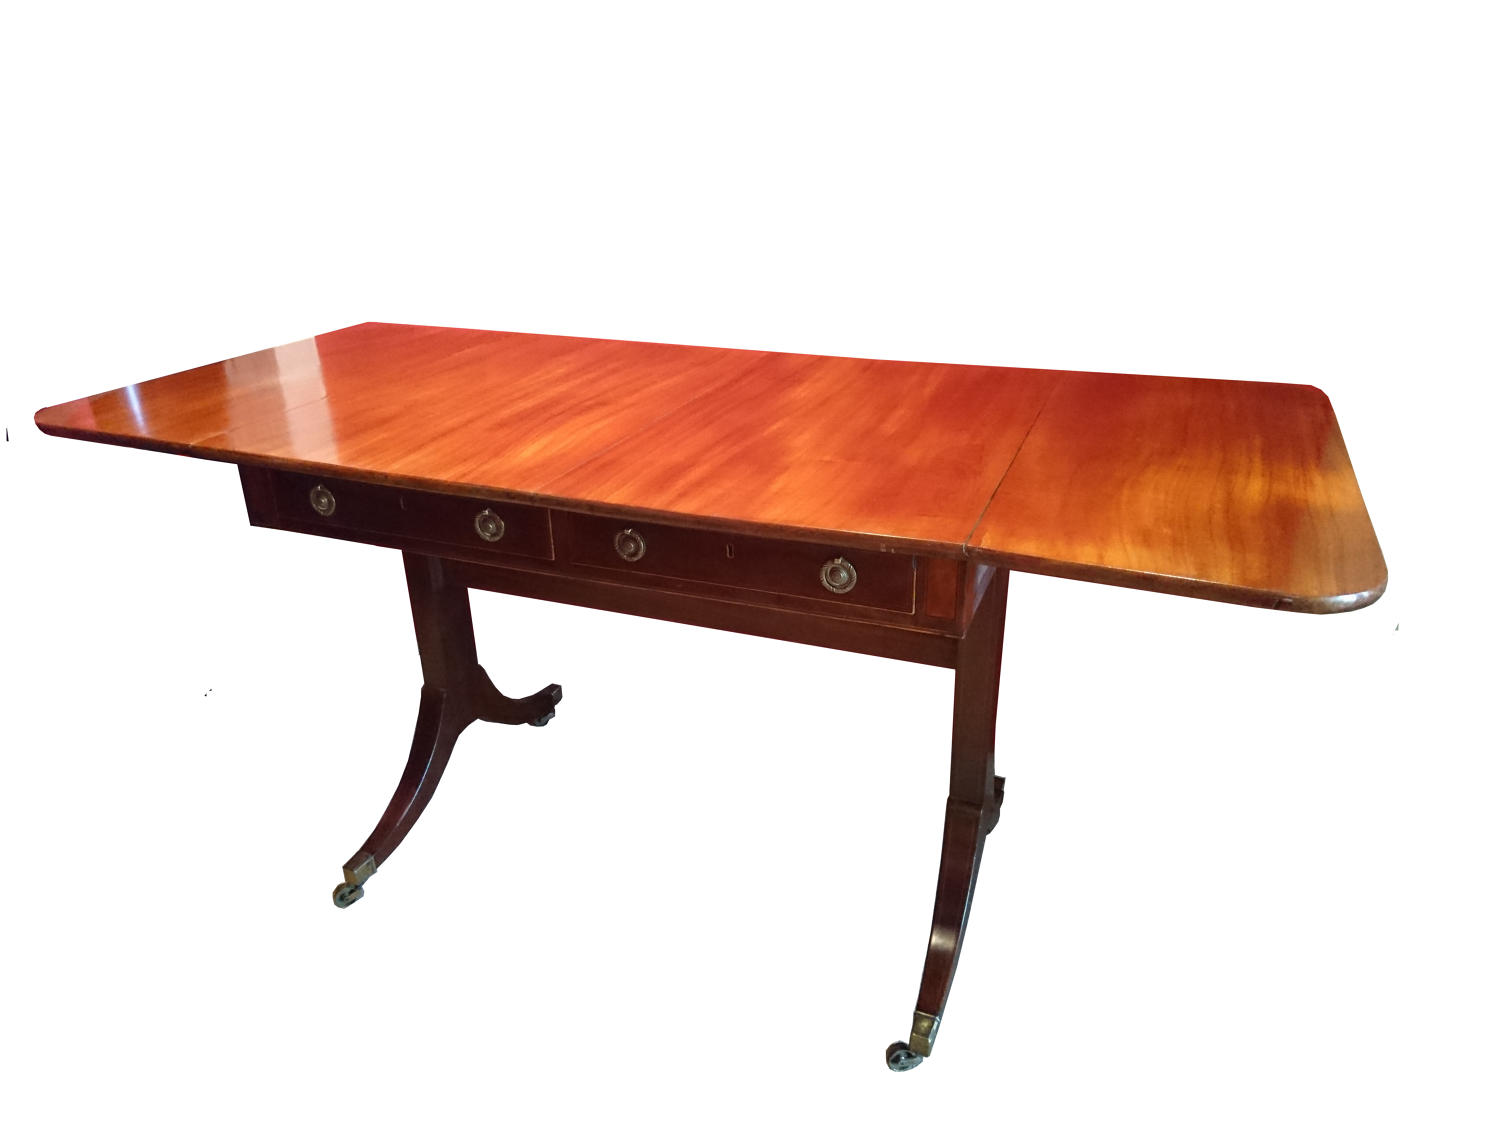 Regency mahogany sofa table circa 1830